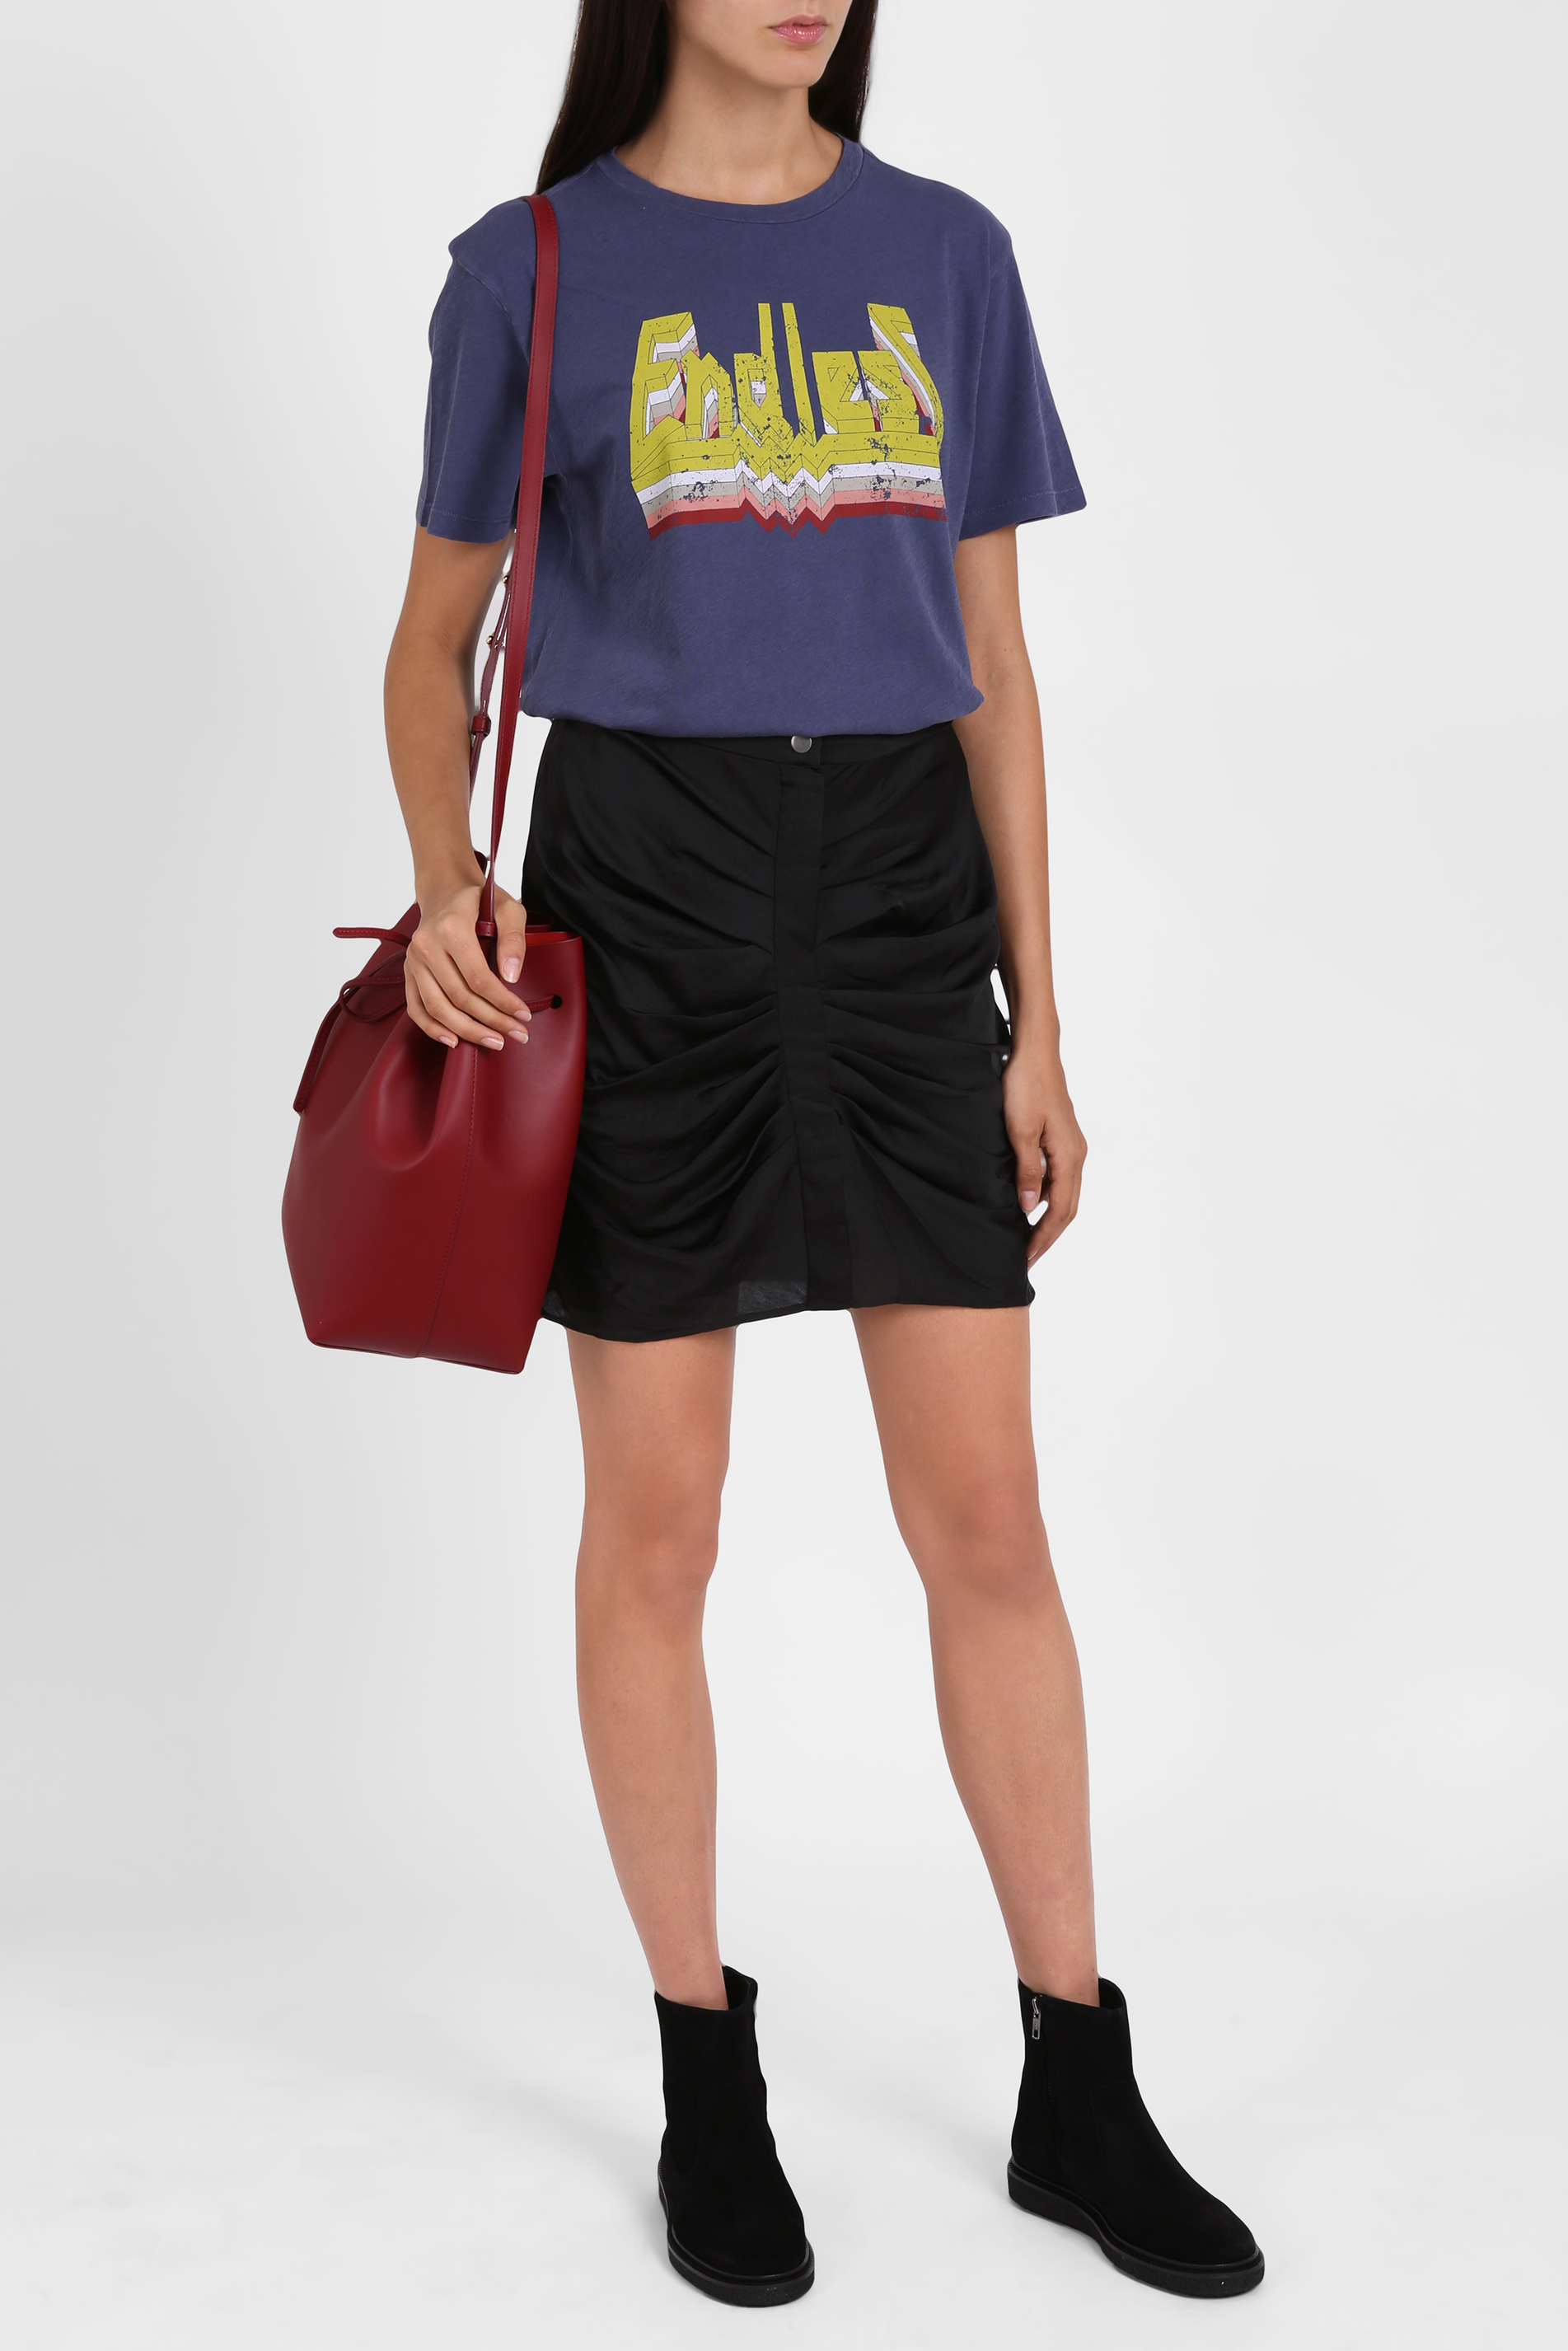 Toile isabel marant dewel endless t shirt in blue lyst for Isabel marant t shirt sale